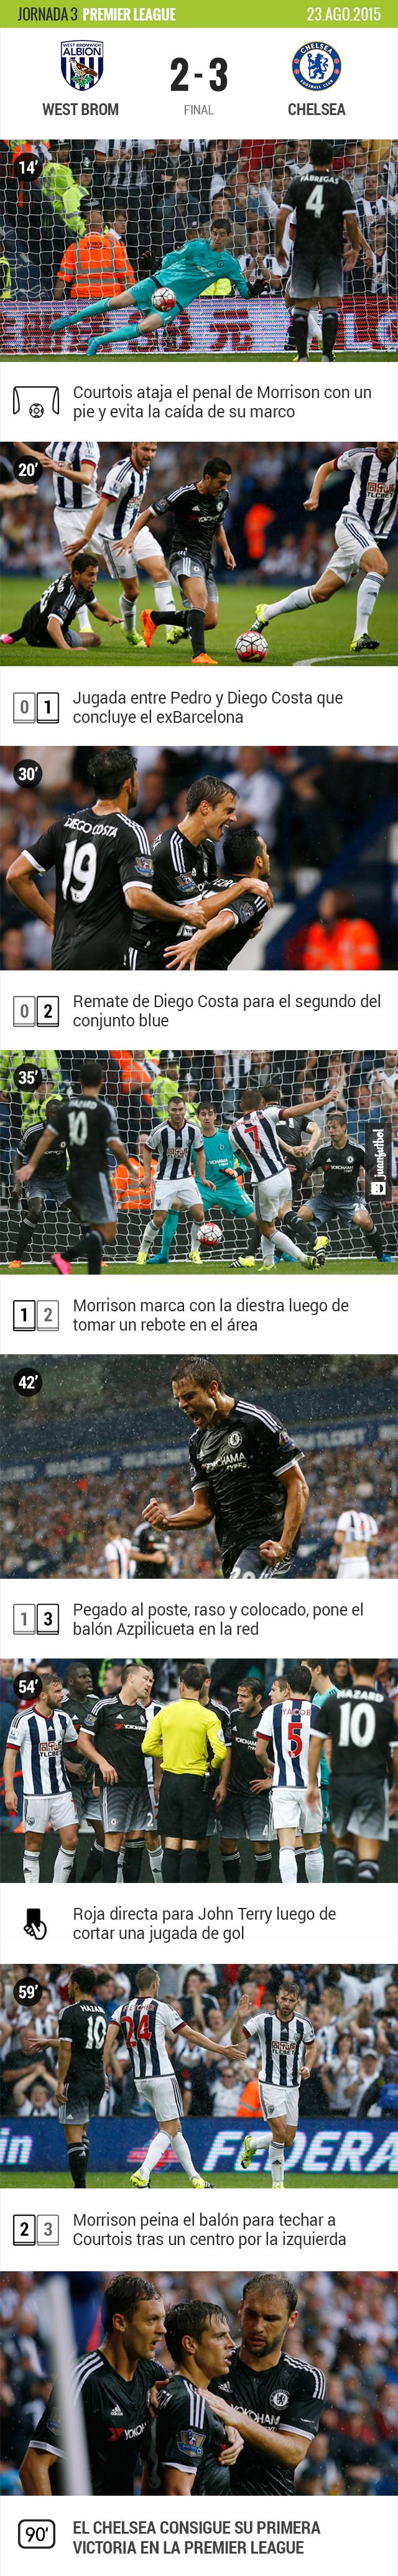 West Brom 2-3 Chelsea